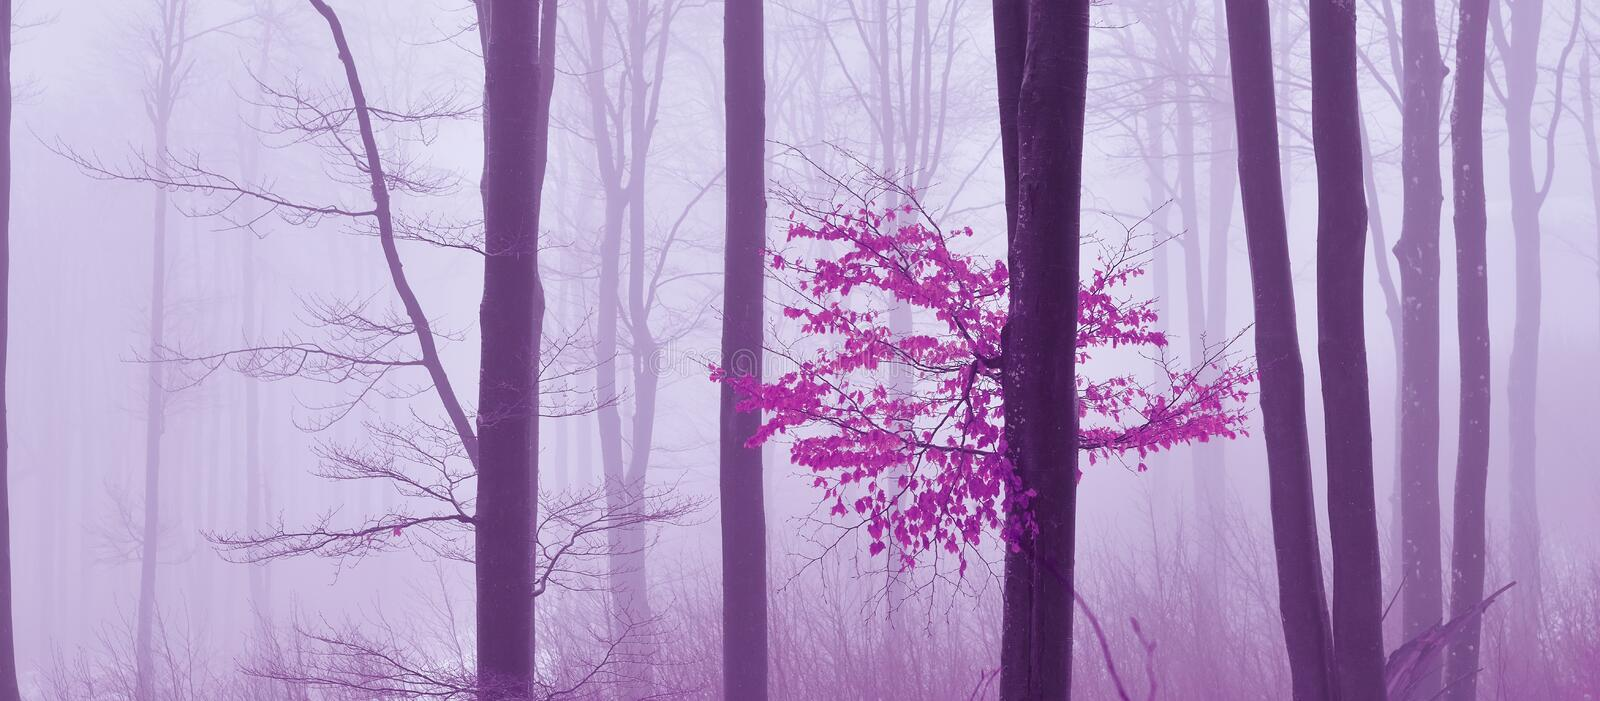 Magical Fog,forest.Autumn Background.Artistic Wallpaper.Fairytale.Dream.Tree.Beautiful Nature Landscape Panorama.Colorful.Leaves. Print for Wallpaper. Fantasy